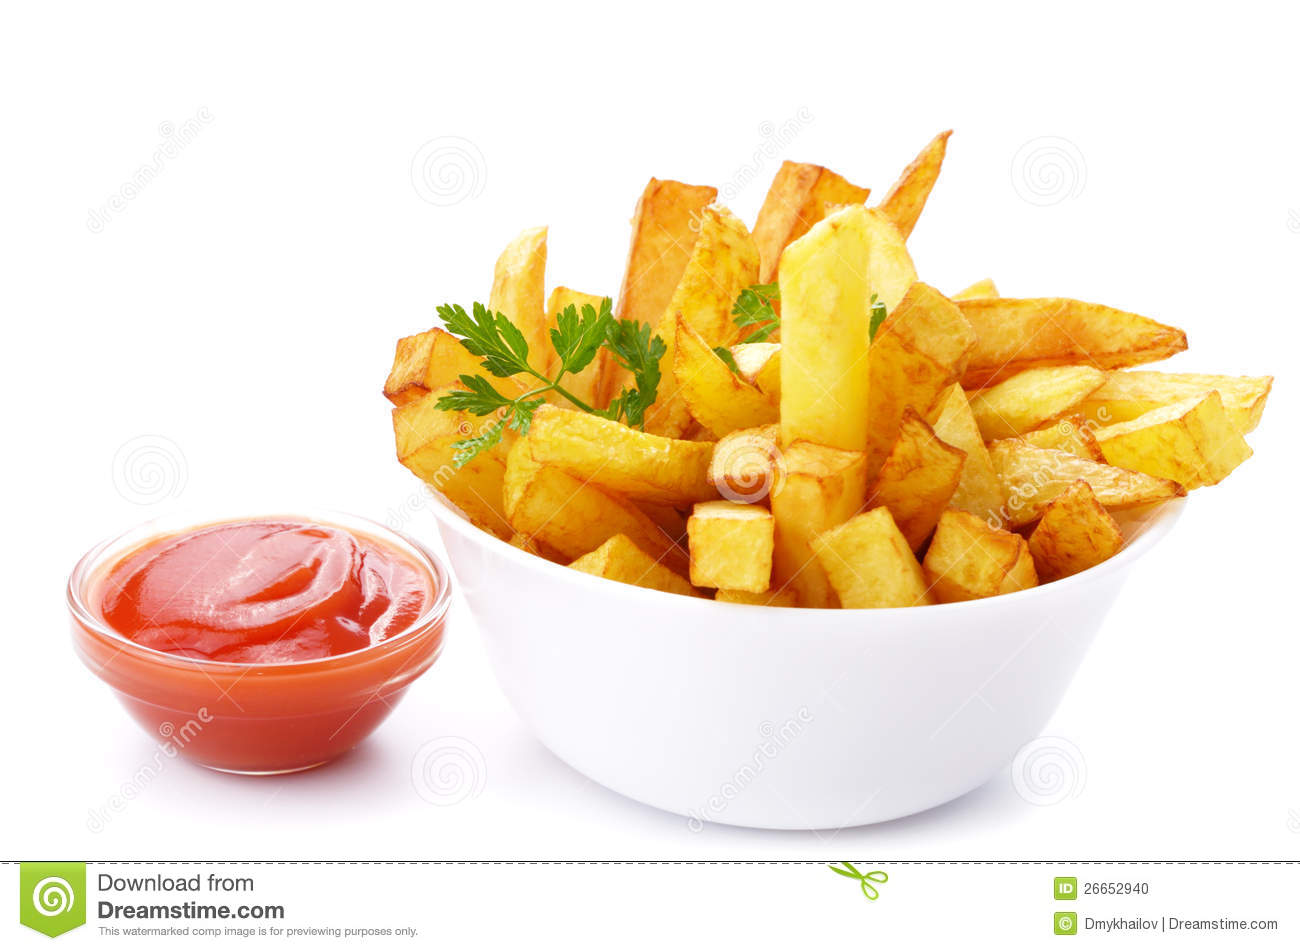 Stock Photo: French fries with ketchup. Image: 26652940